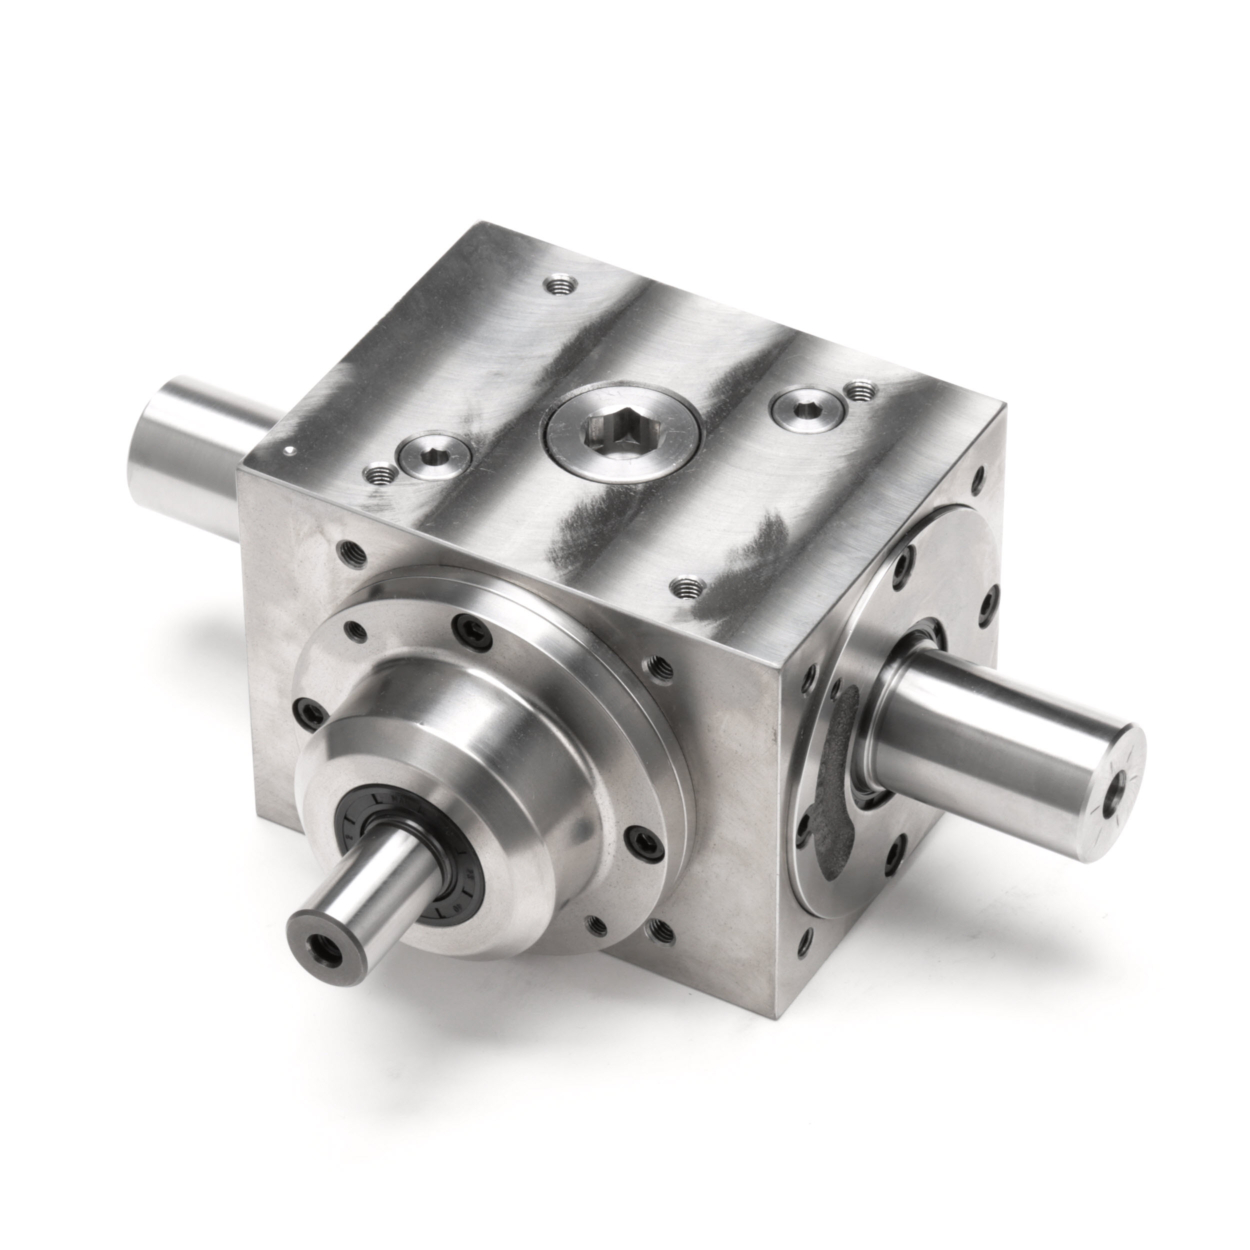 Tandler - Reinforced Shaft Spiral Bevel Gearbox